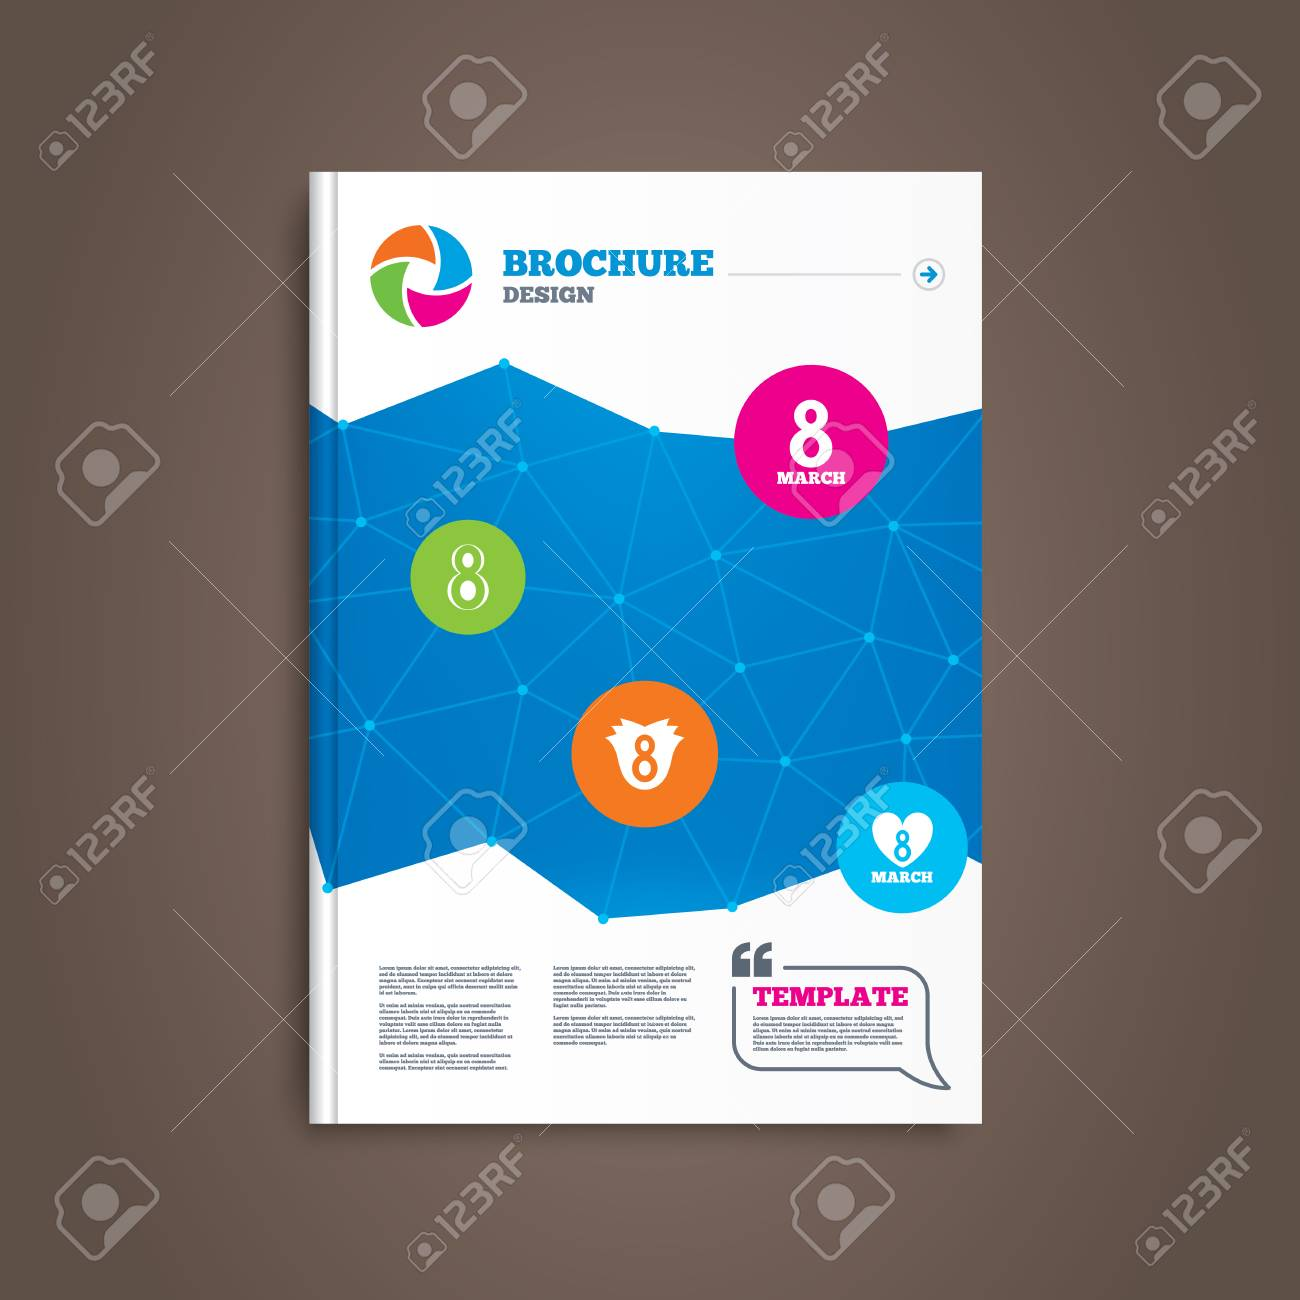 Brochure Or Flyer Design 8 March Womens Day Icons Tulip Rose Flower Diagram And